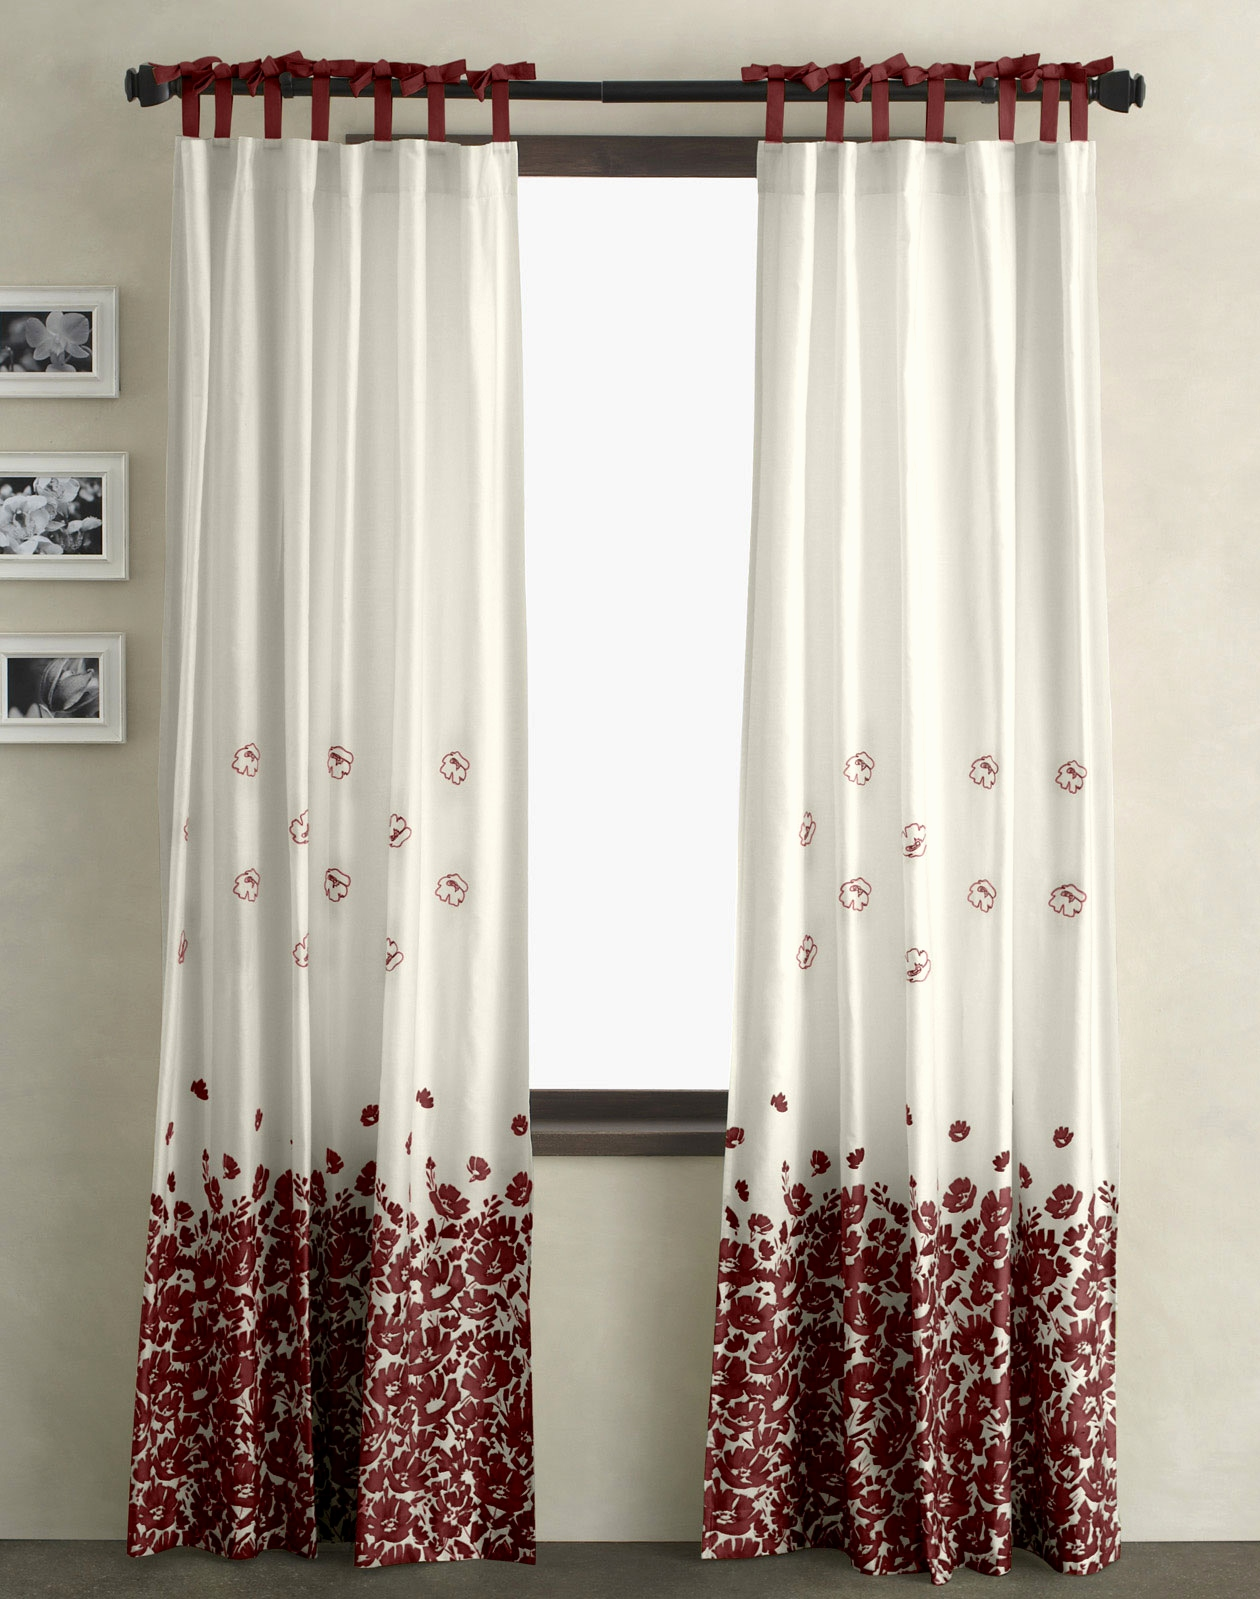 curtain en design covering window home interior living photo free room treatment house restaurant for curtains images